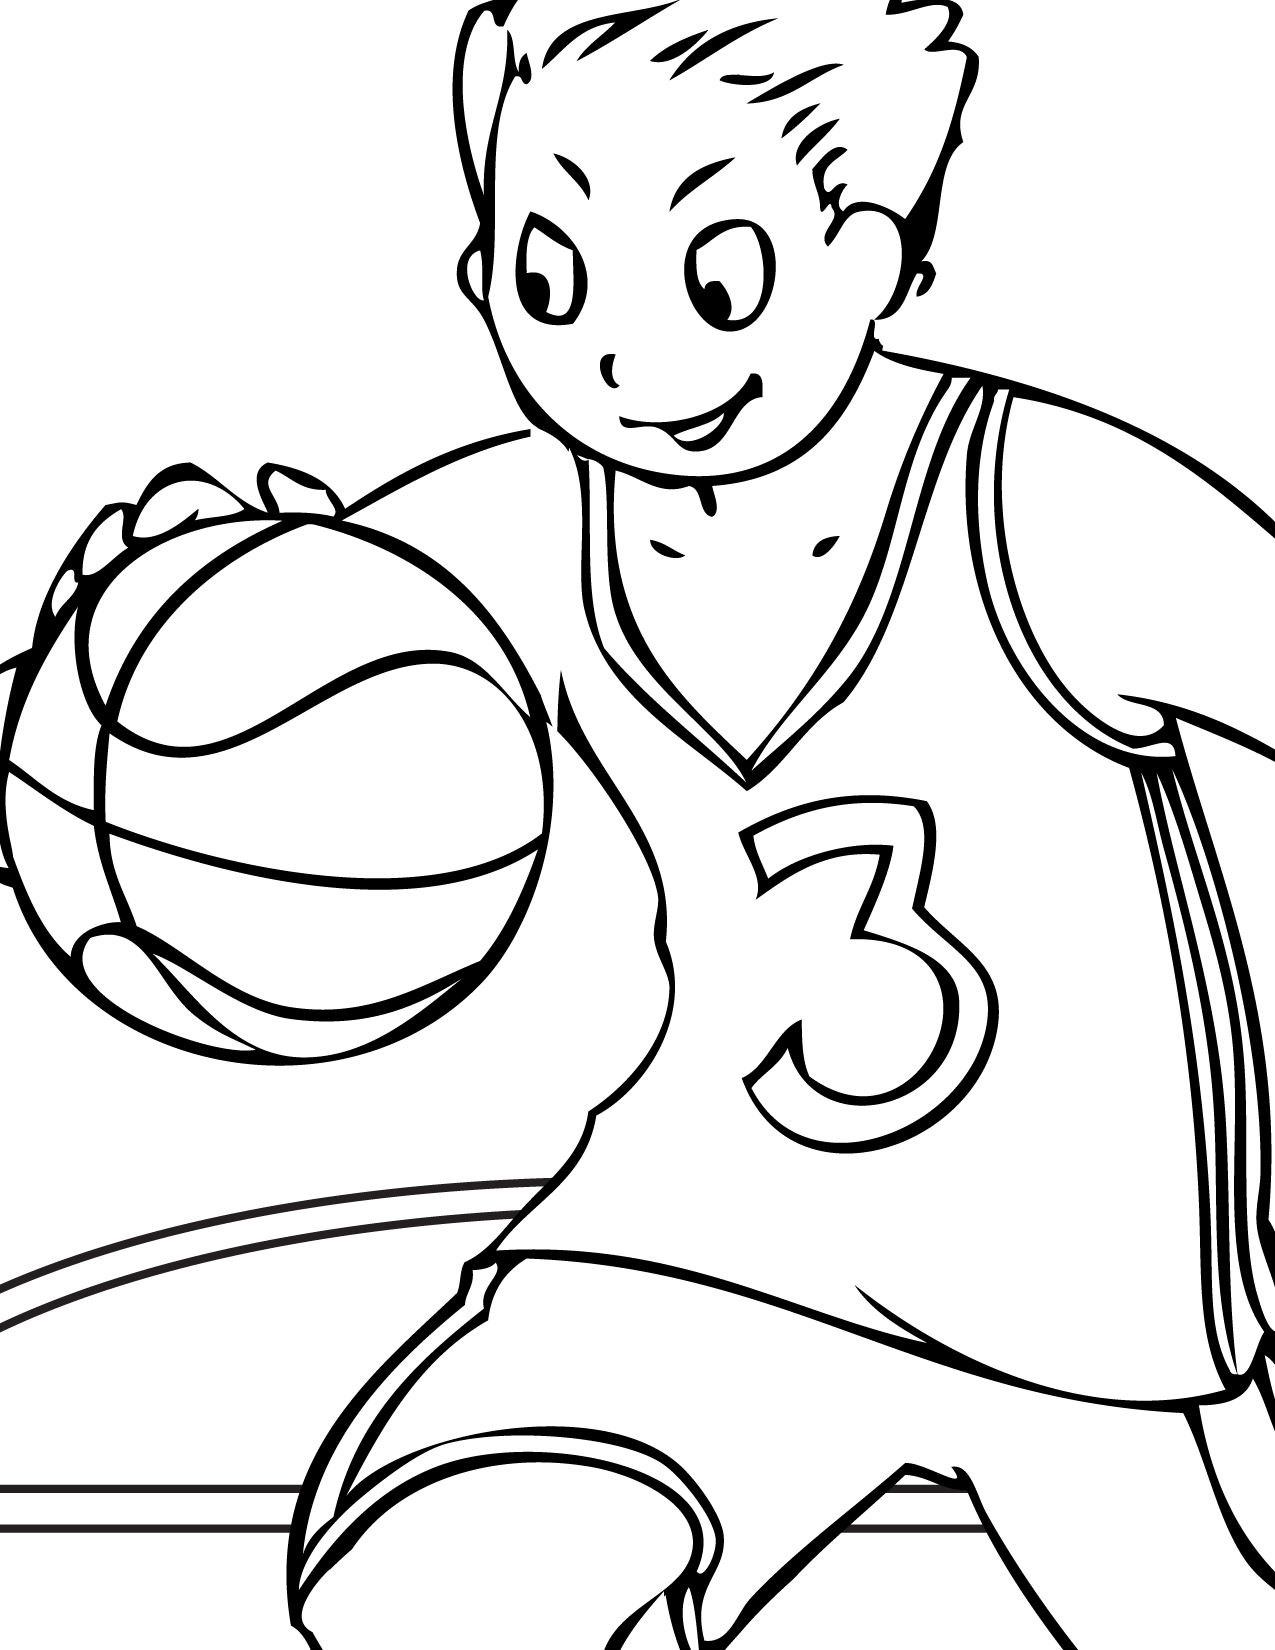 Free printable volleyball coloring pages for kids for Coloring pages online